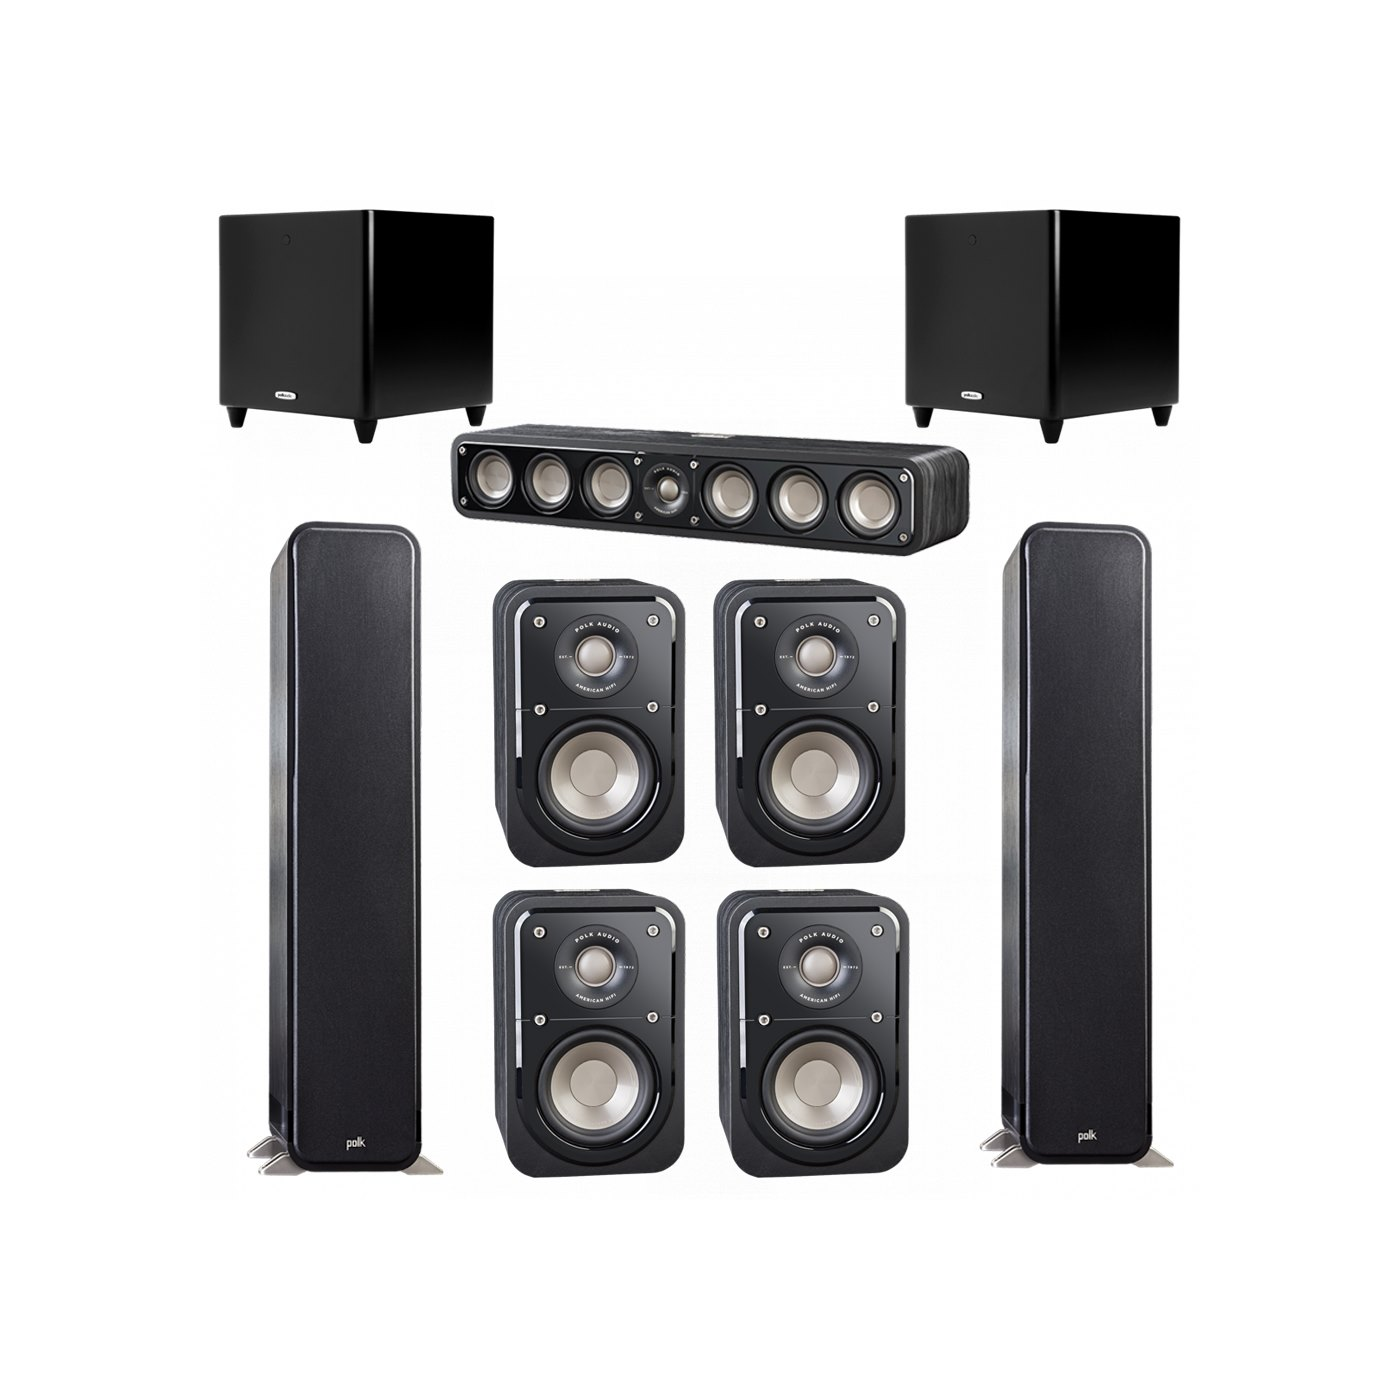 Polk Audio Signature 7.2 System with 2 S55 Tower Speaker, 1 Polk S35 Center Speaker, 4 Polk S10 Bookshelf Speaker, 2 Polk DSW PRO 550 wi Subwoofer